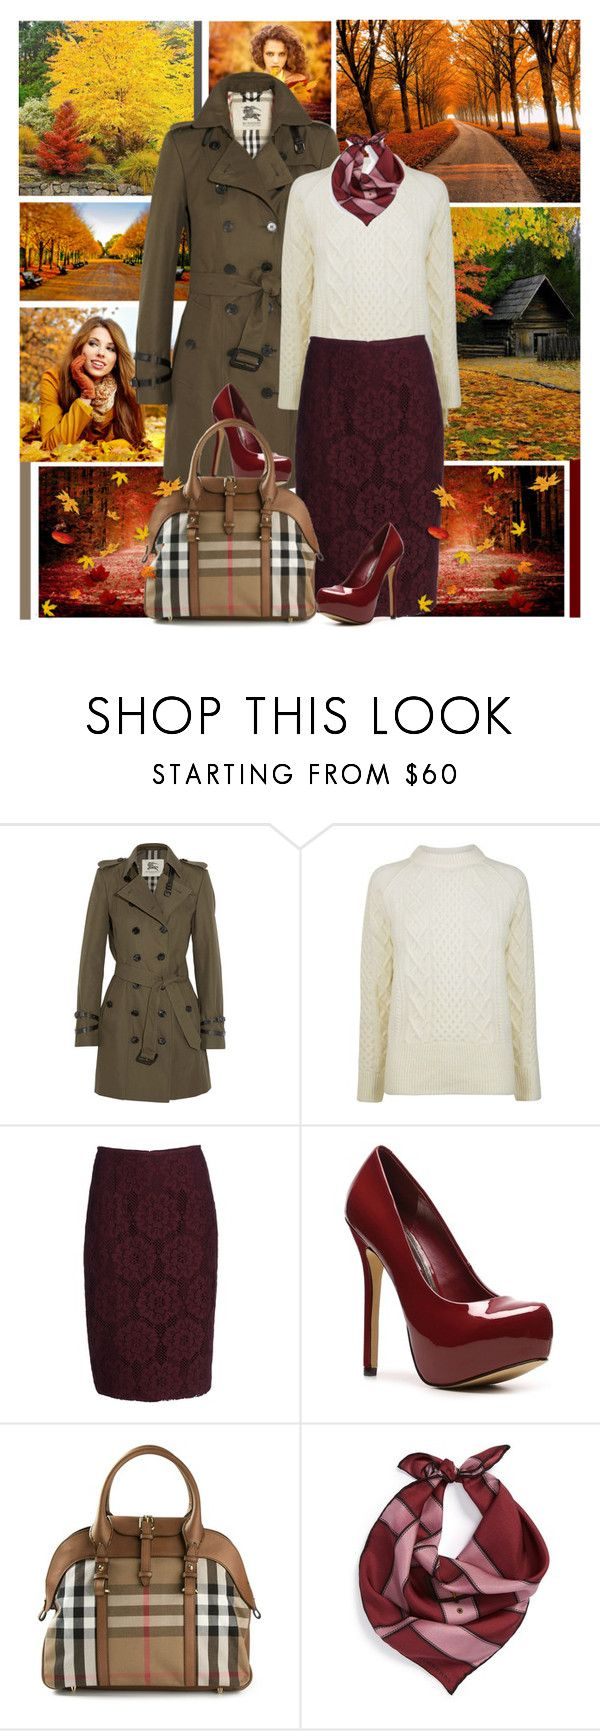 """Falling in love!"" by instylefun ❤ liked on Polyvore featuring David Webb, Burberry and Steve Madden"